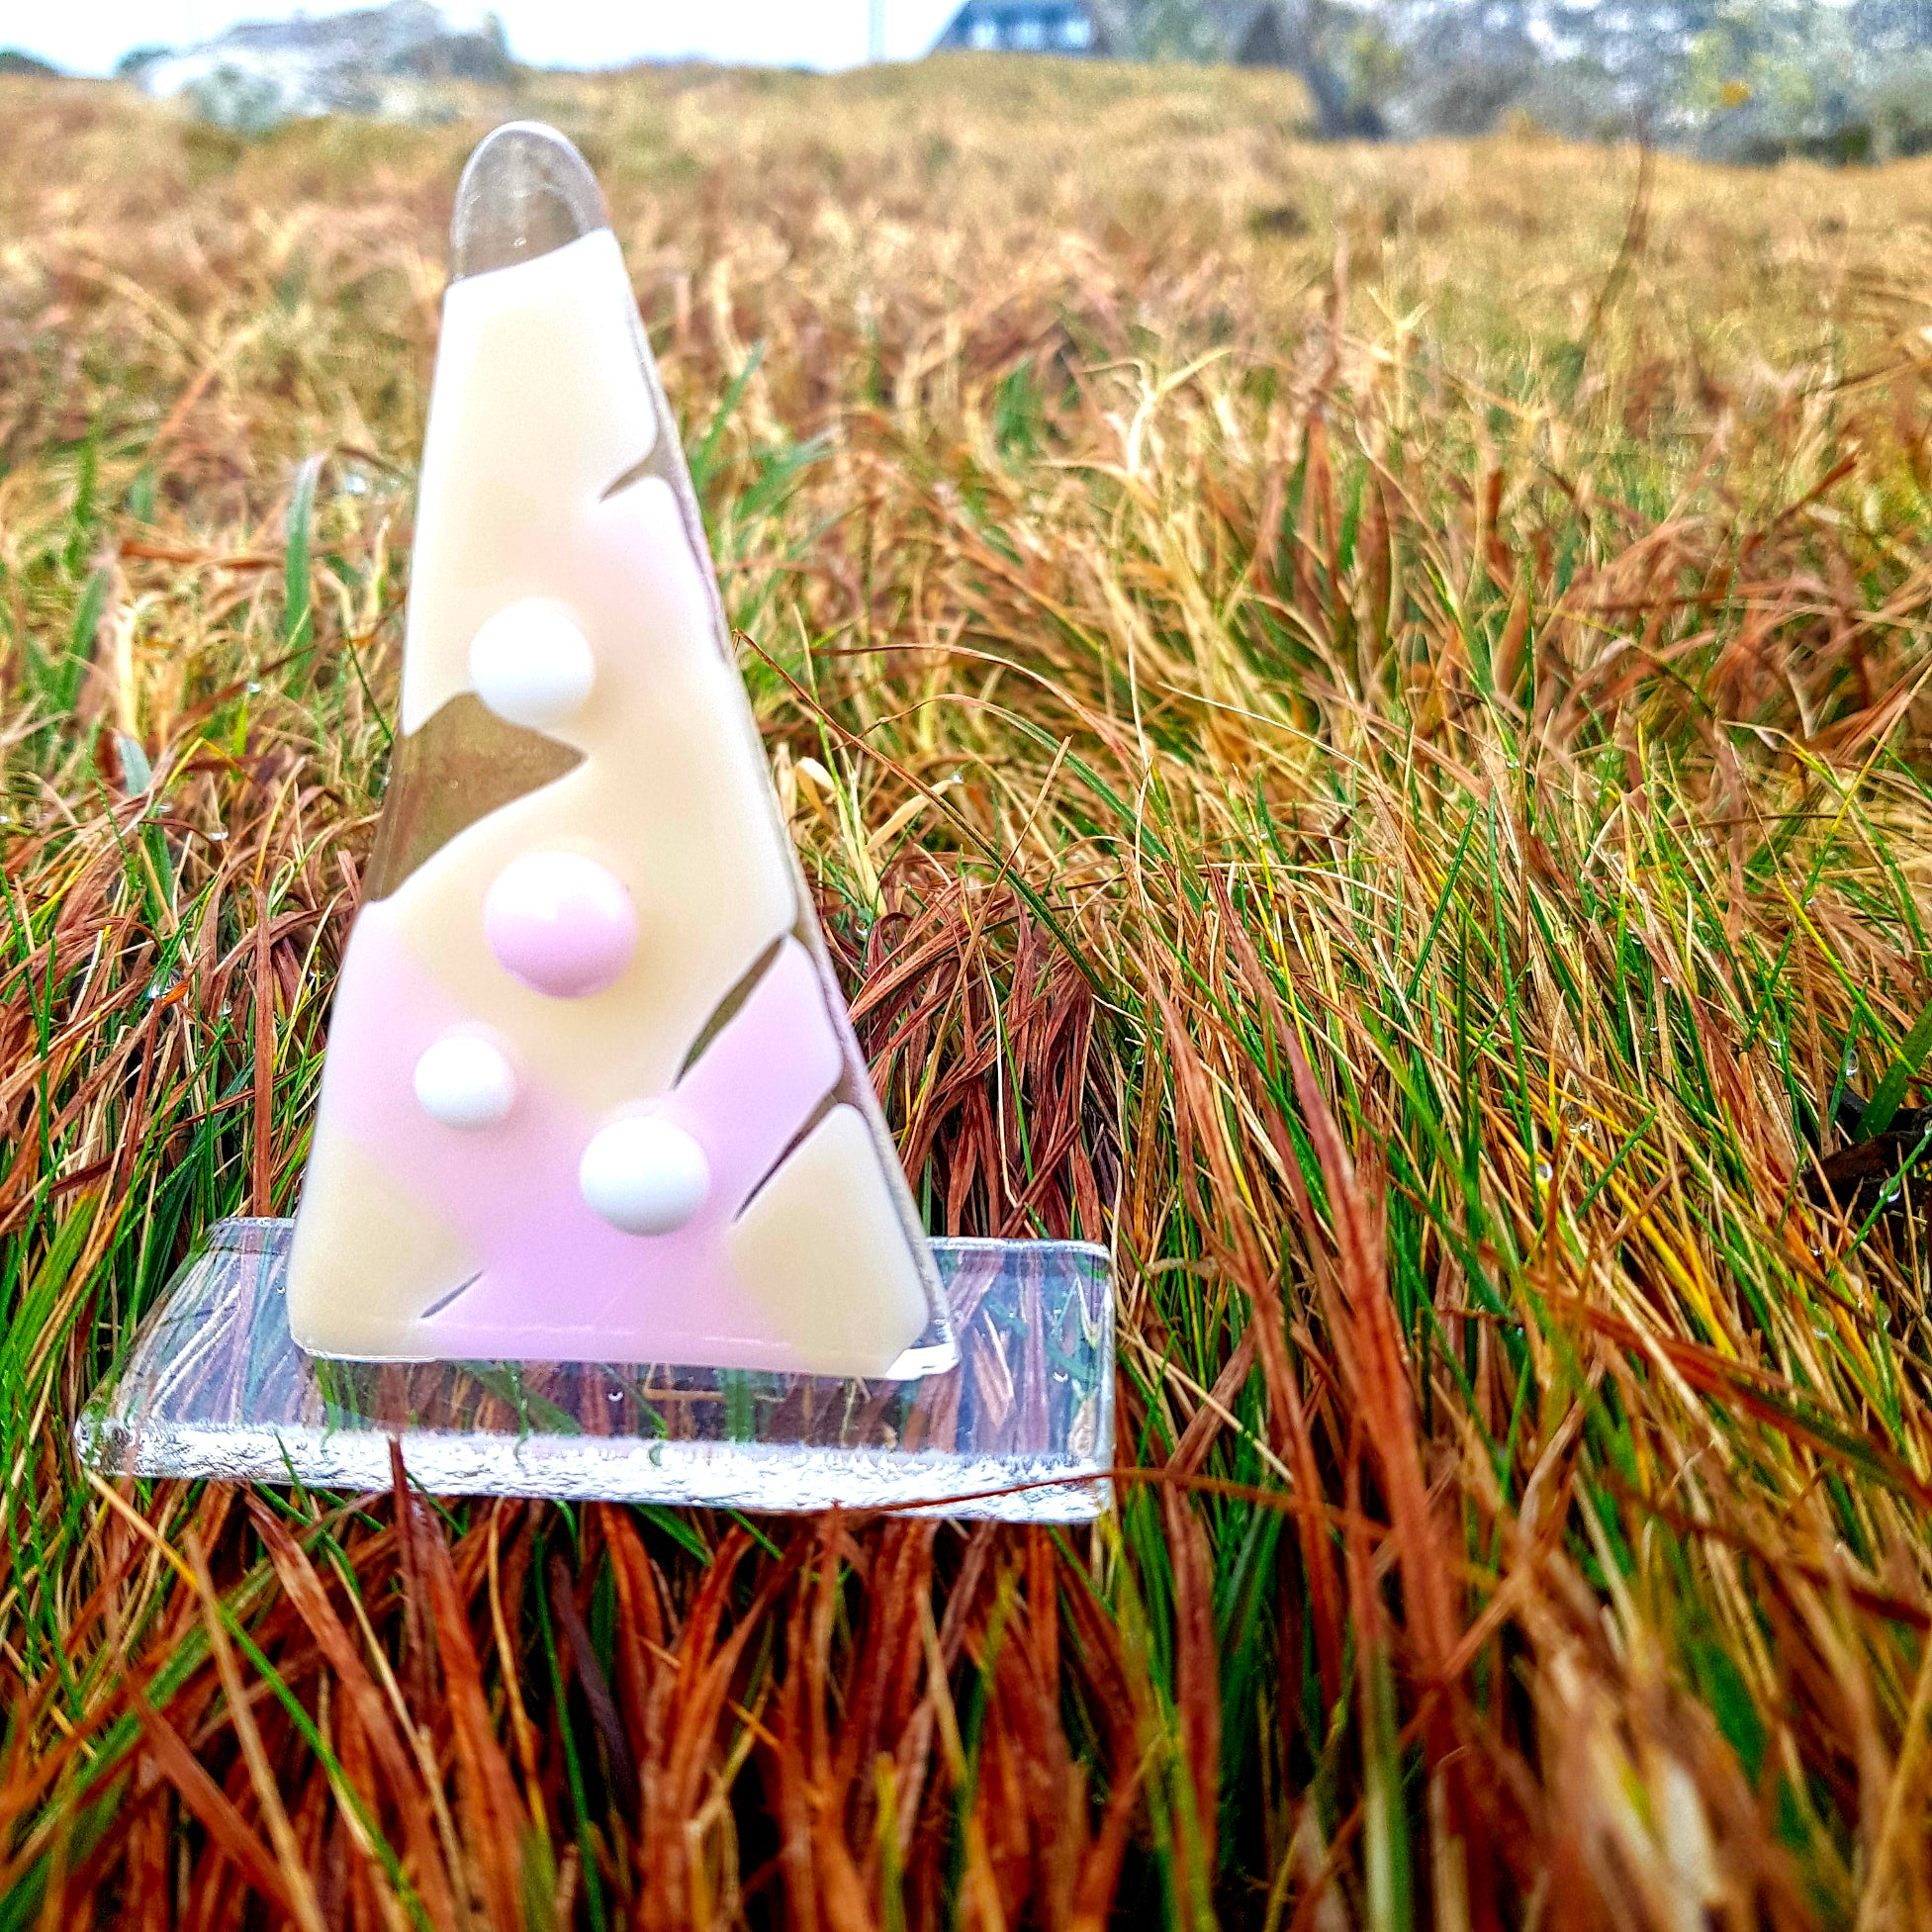 A freestanding tree-shaped sculpture in pink and vanilla, made by Connemara Blue